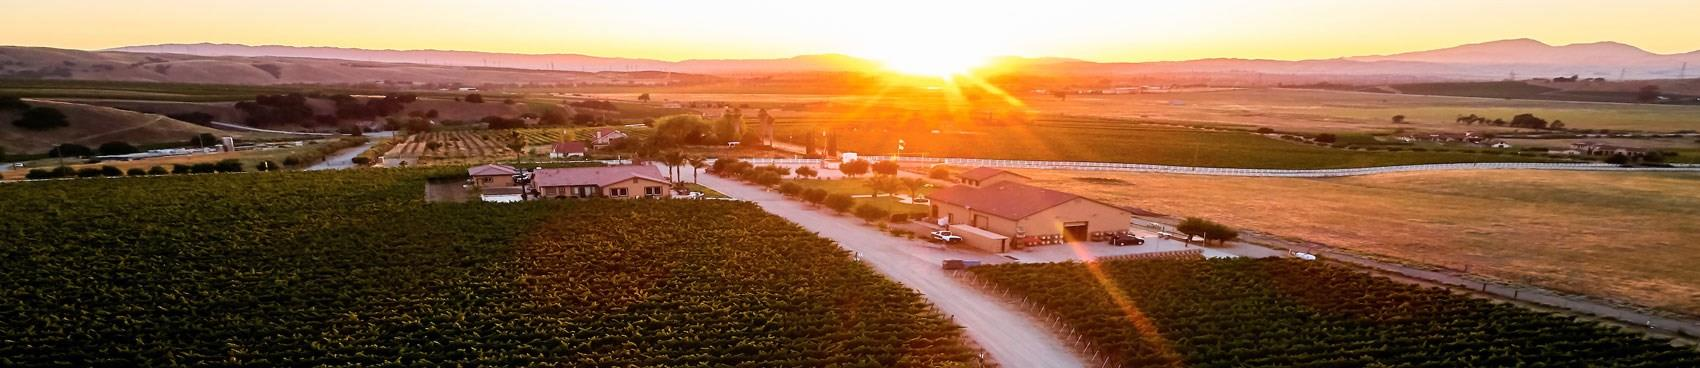 A image of McGrail Vineyards and Winery